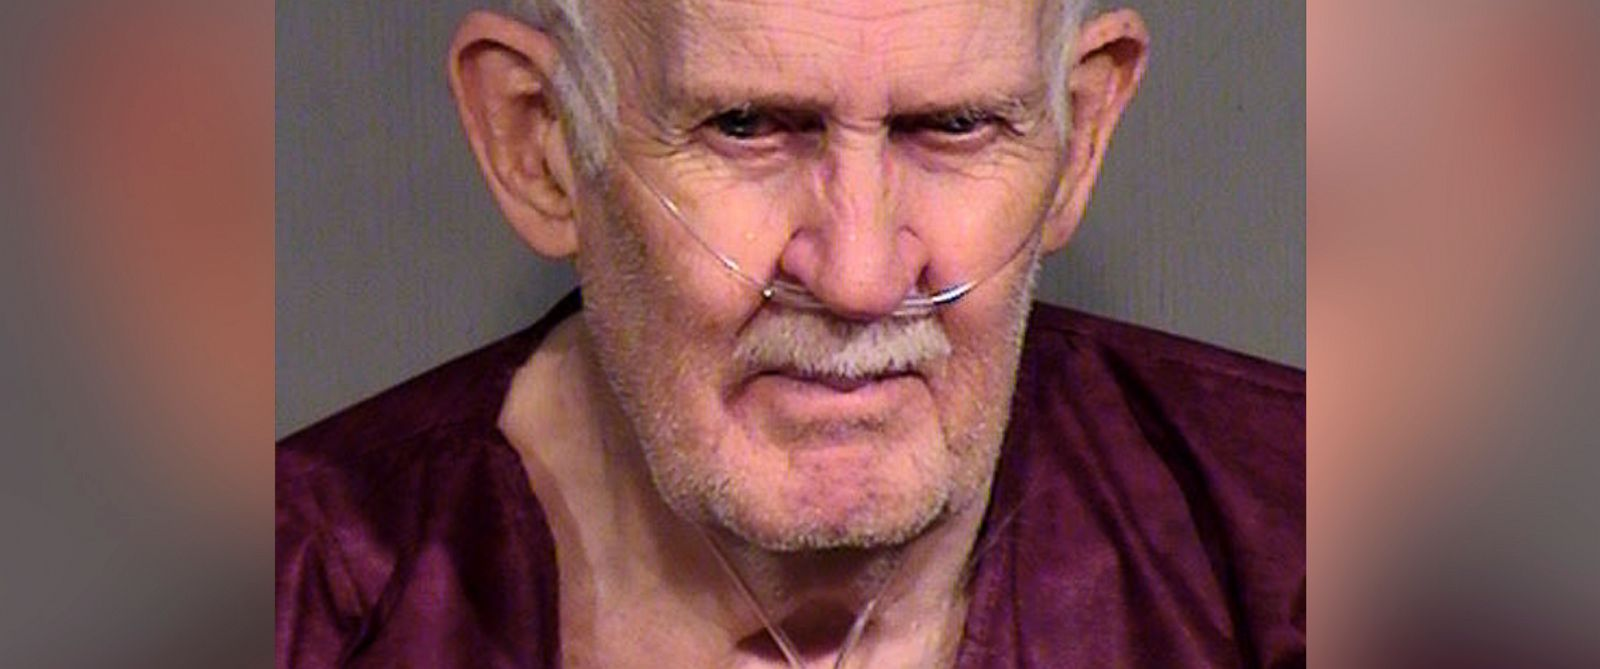 PHOTO: Howard Rudolph, 79, was arrested after his wife, Earlene Rudolph, was found shot to death in the bathroom of the couples home in a Sun City, Ariz., retirement community.